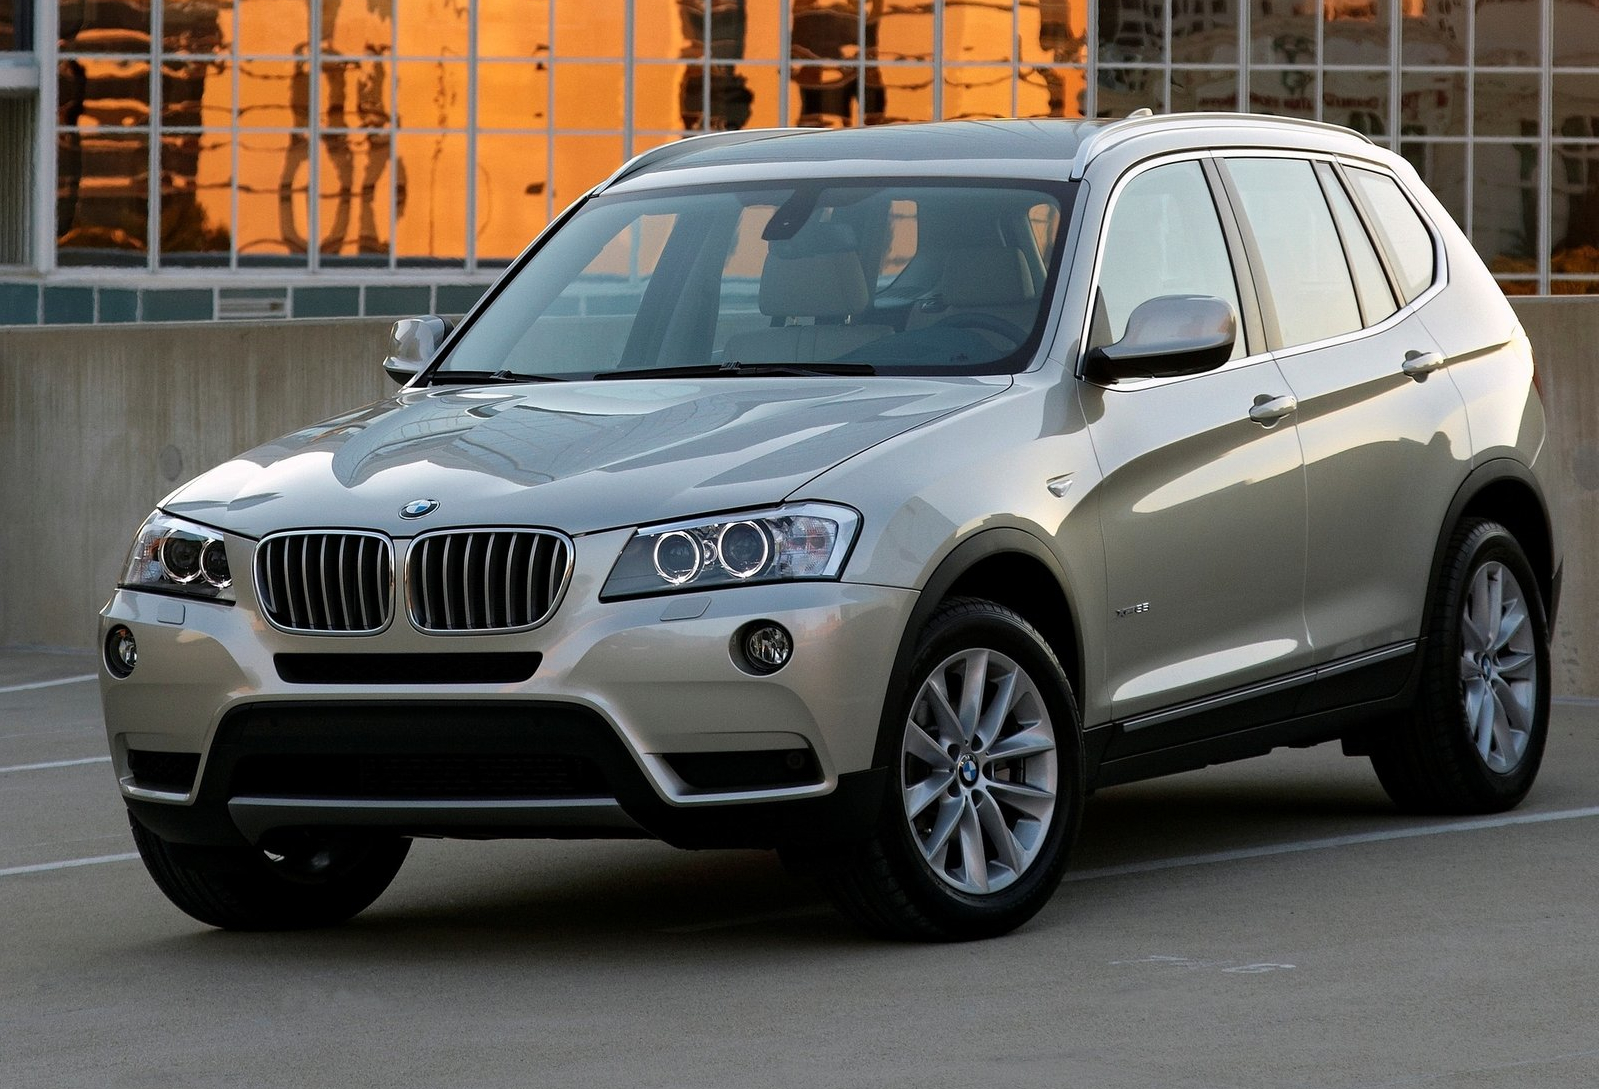 2014 bmw f25 x3 gets new standard features autoevolution. Black Bedroom Furniture Sets. Home Design Ideas